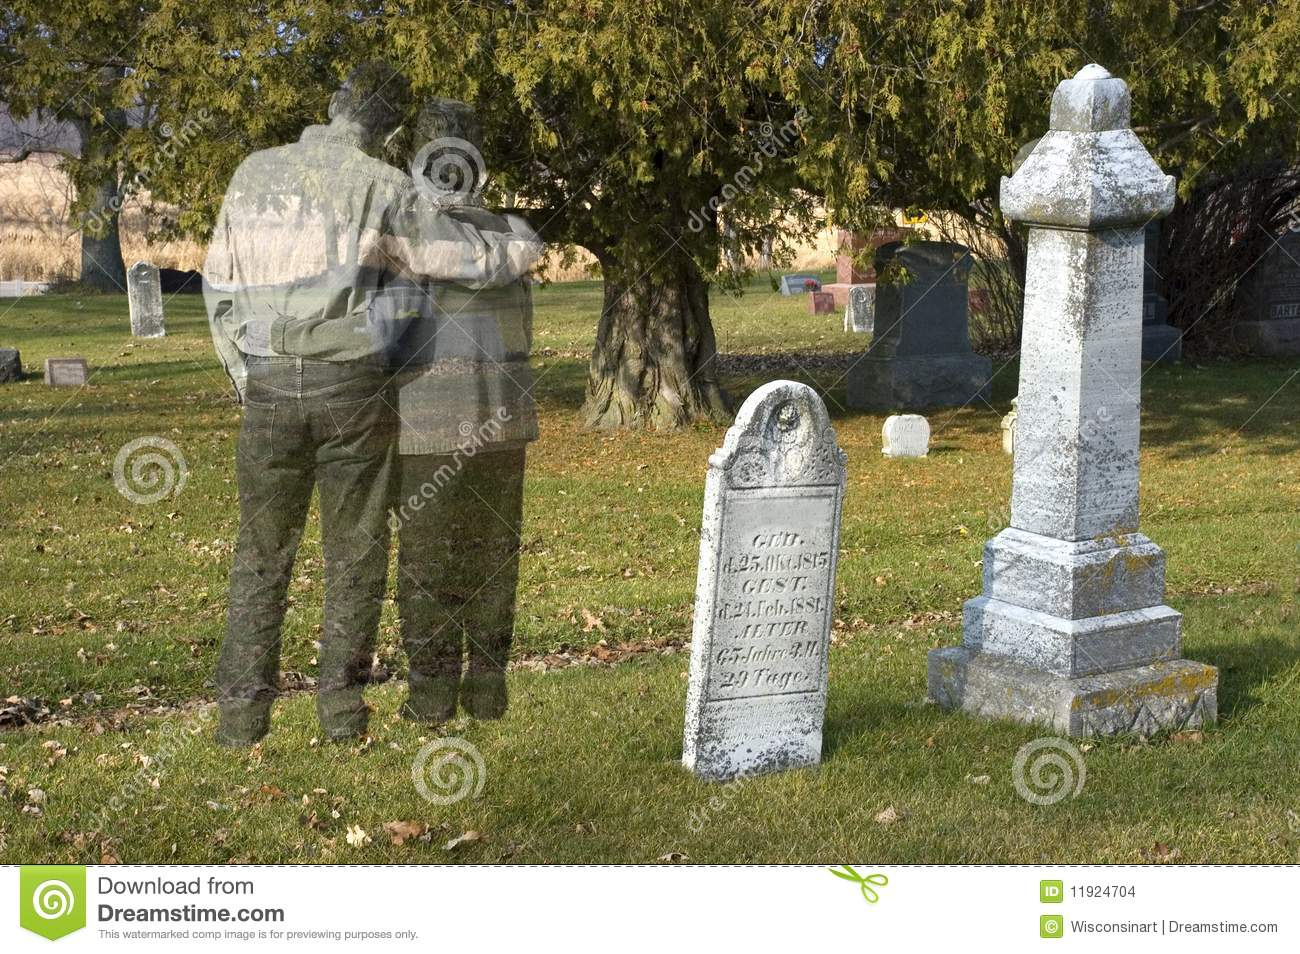 Life, Love After Death, Grief, Loss or Halloween